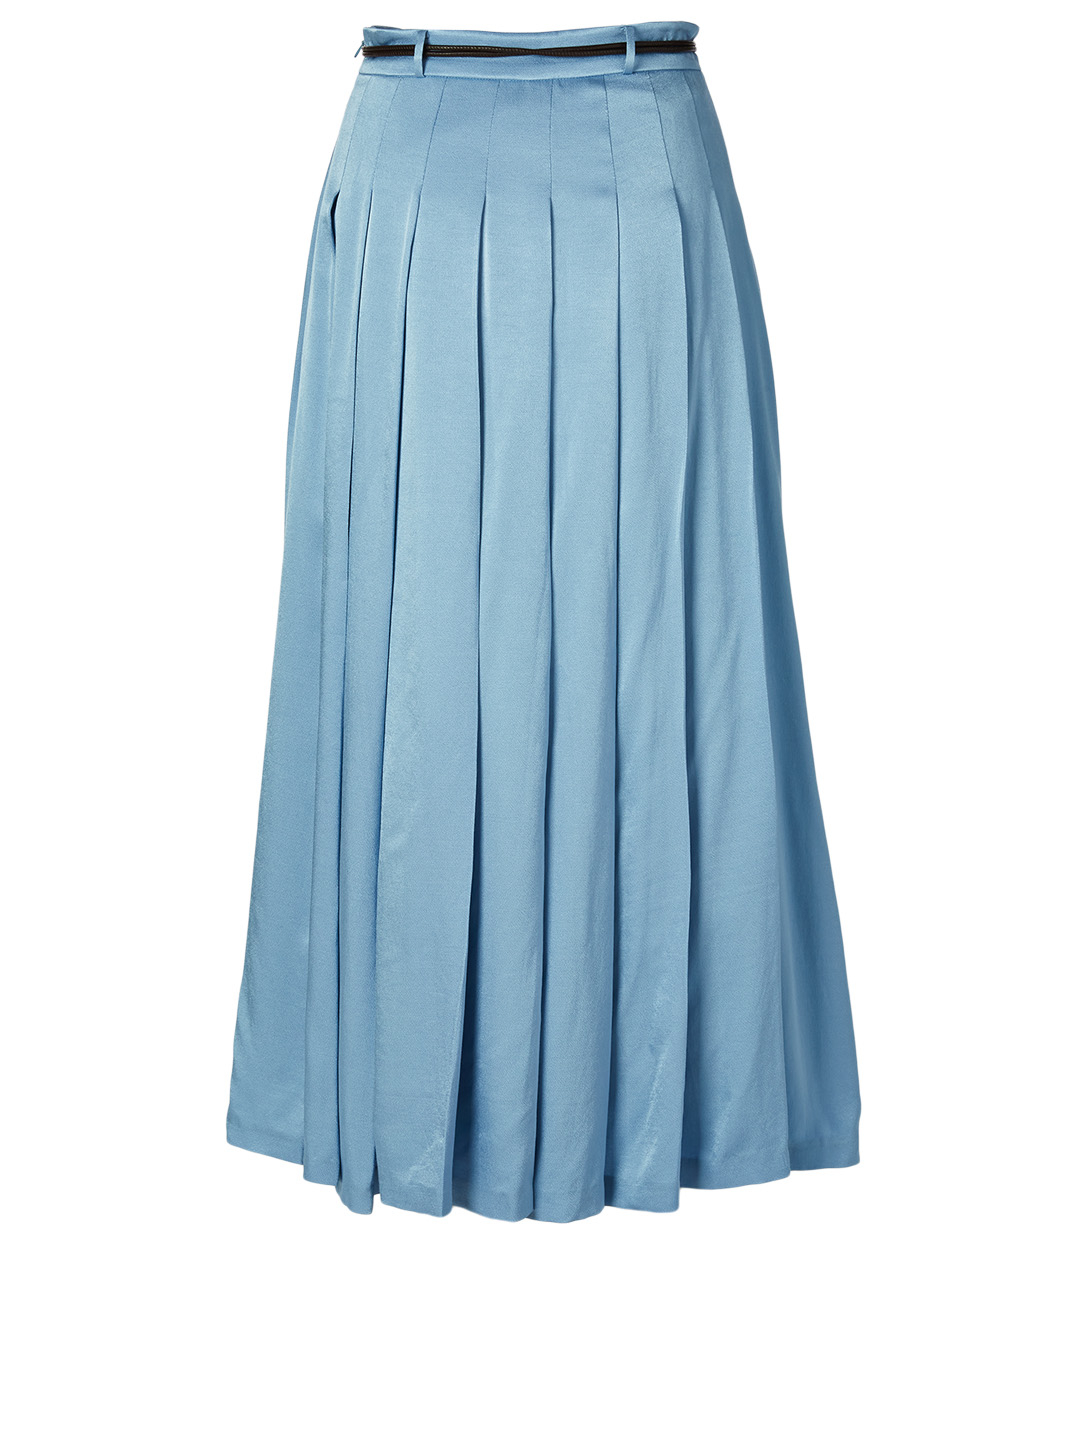 REJINA PYO Malia Midi Skirt With Belt Women's Blue